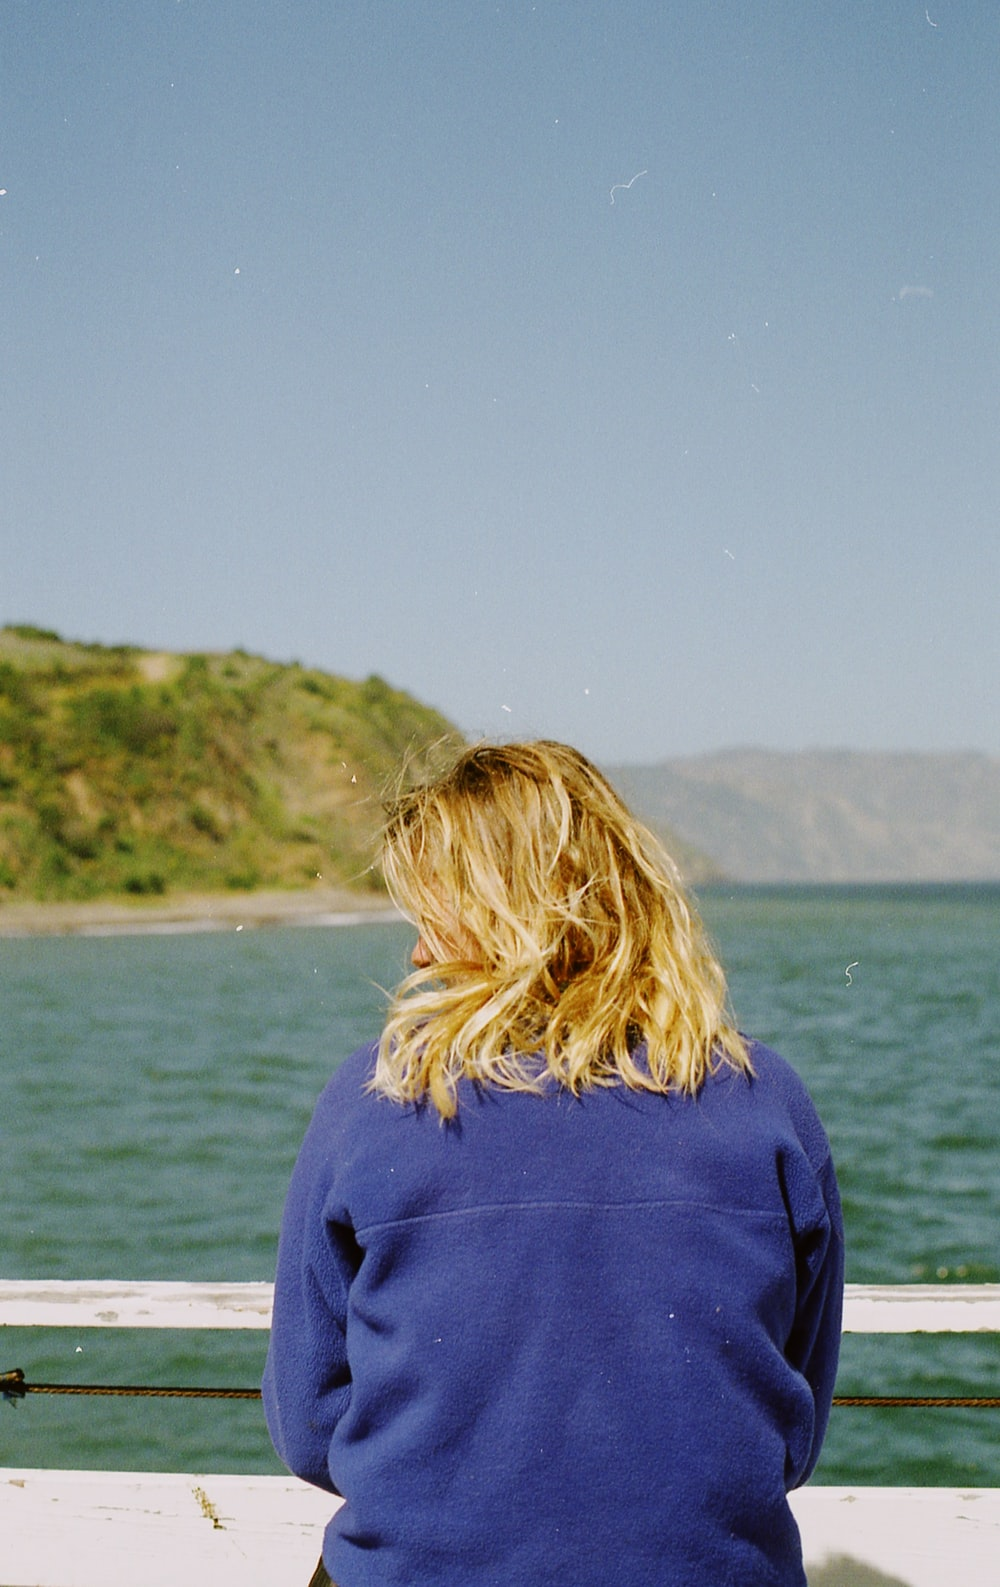 woman in purple hoodie standing near body of water during daytime